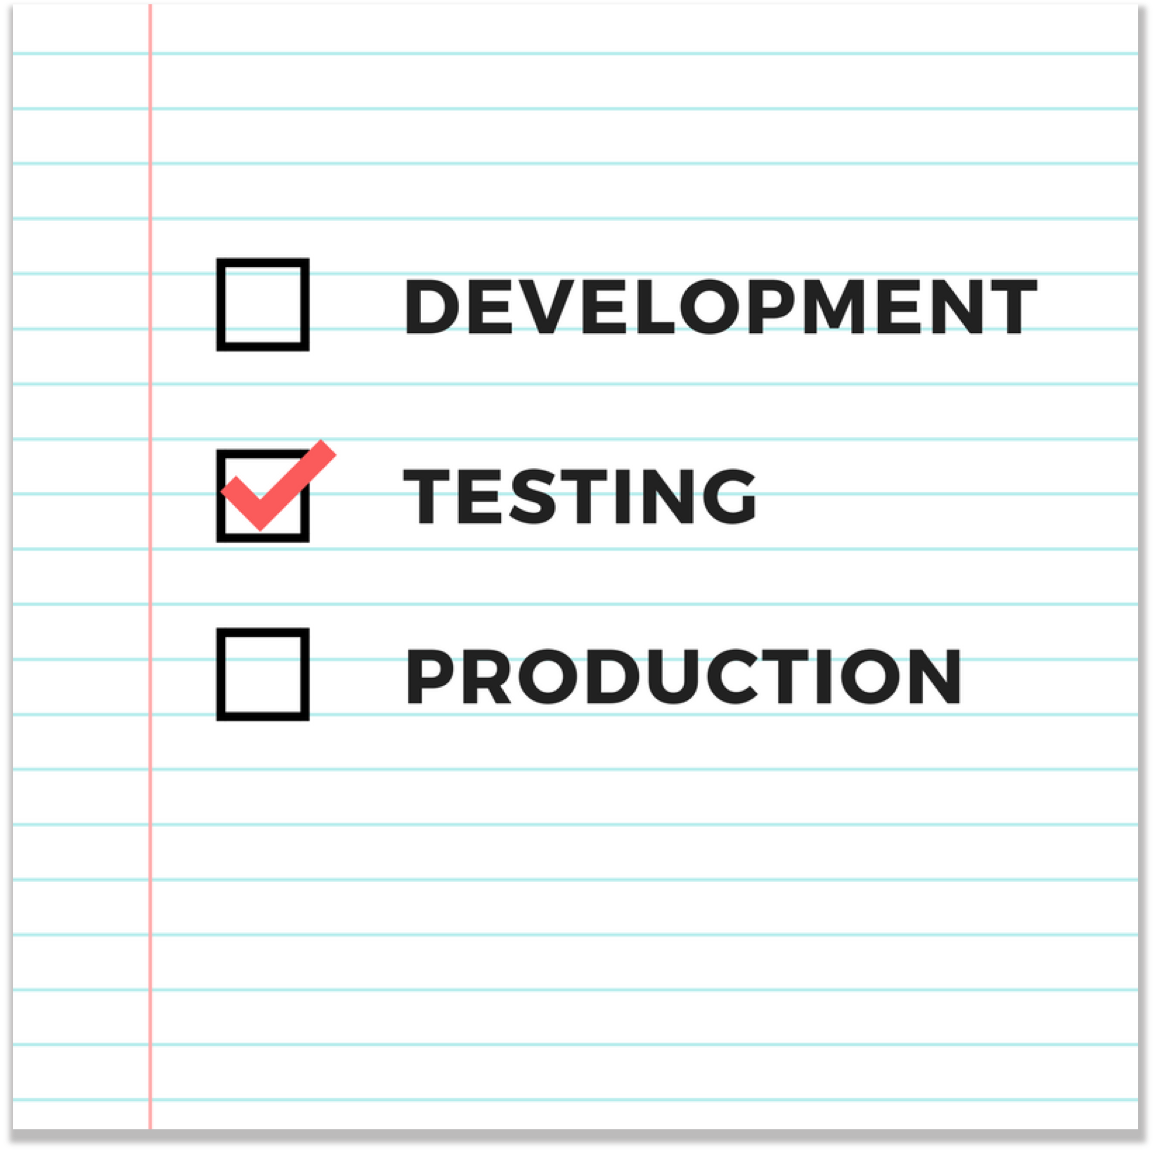 development-and-production-2